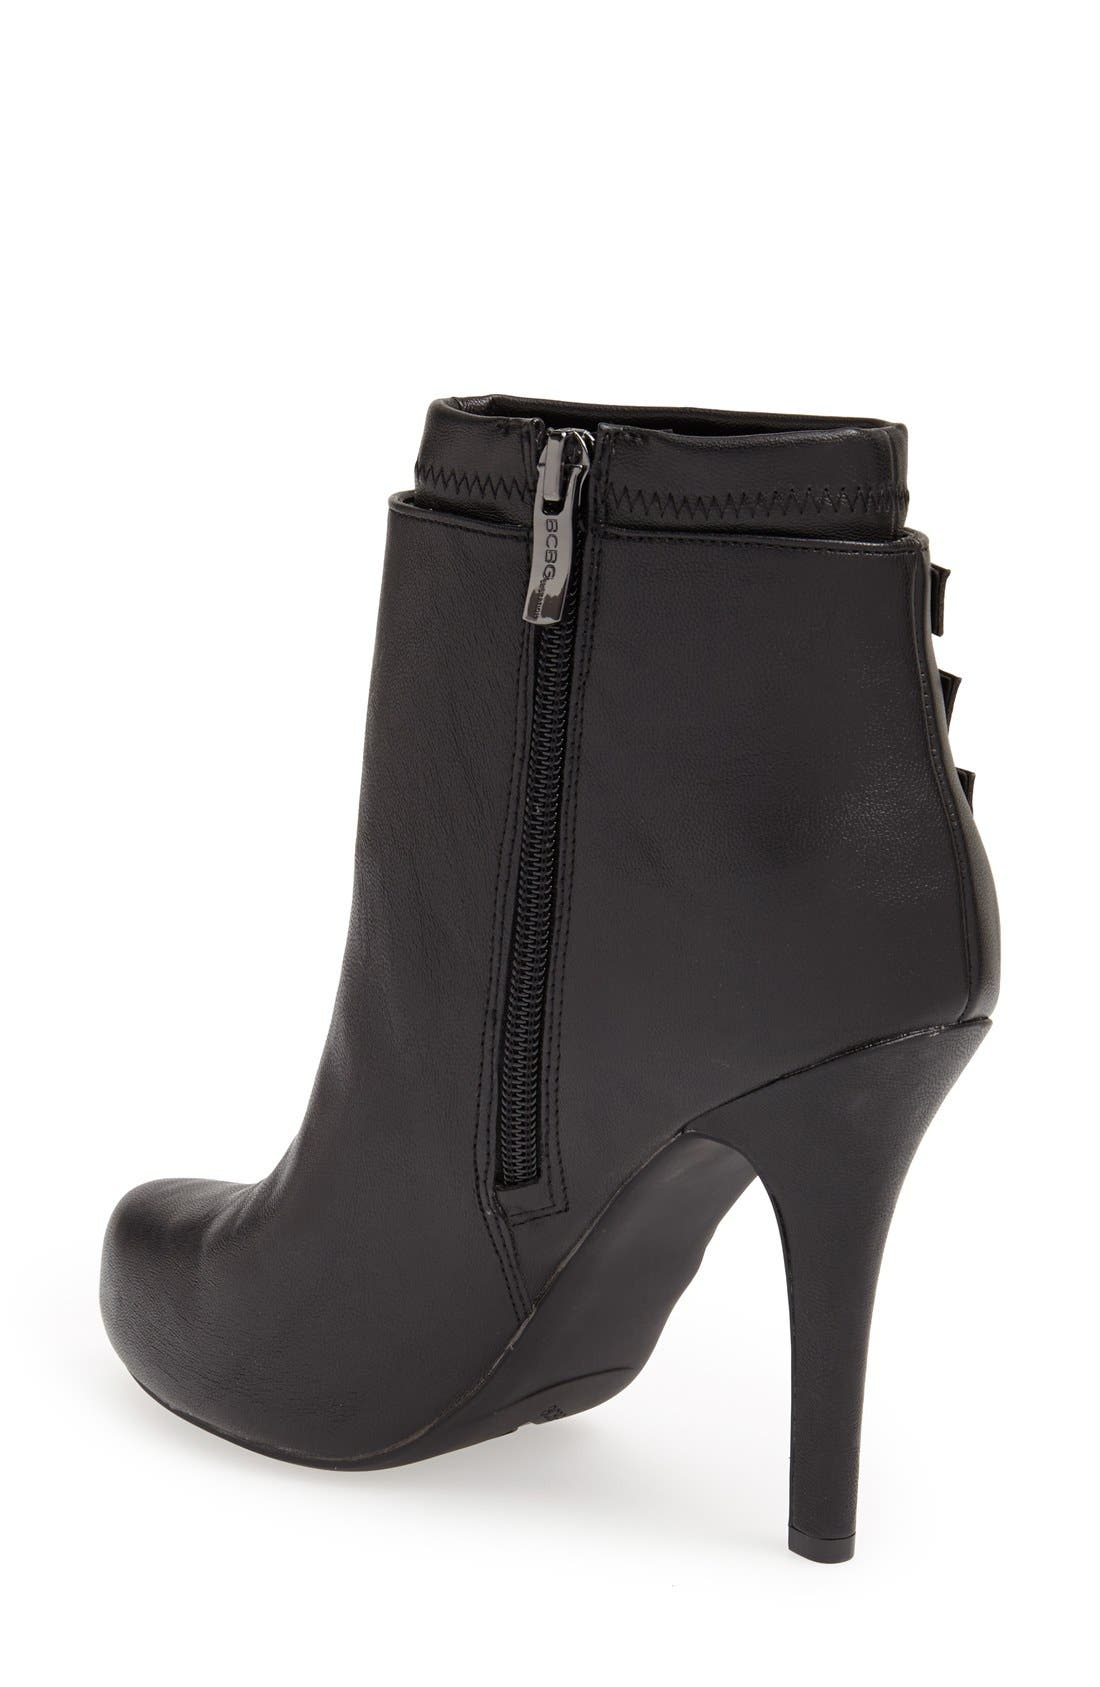 Alternate Image 2  - BCBGeneration 'Fame' Pointy Toe Platform Bootie (Women)